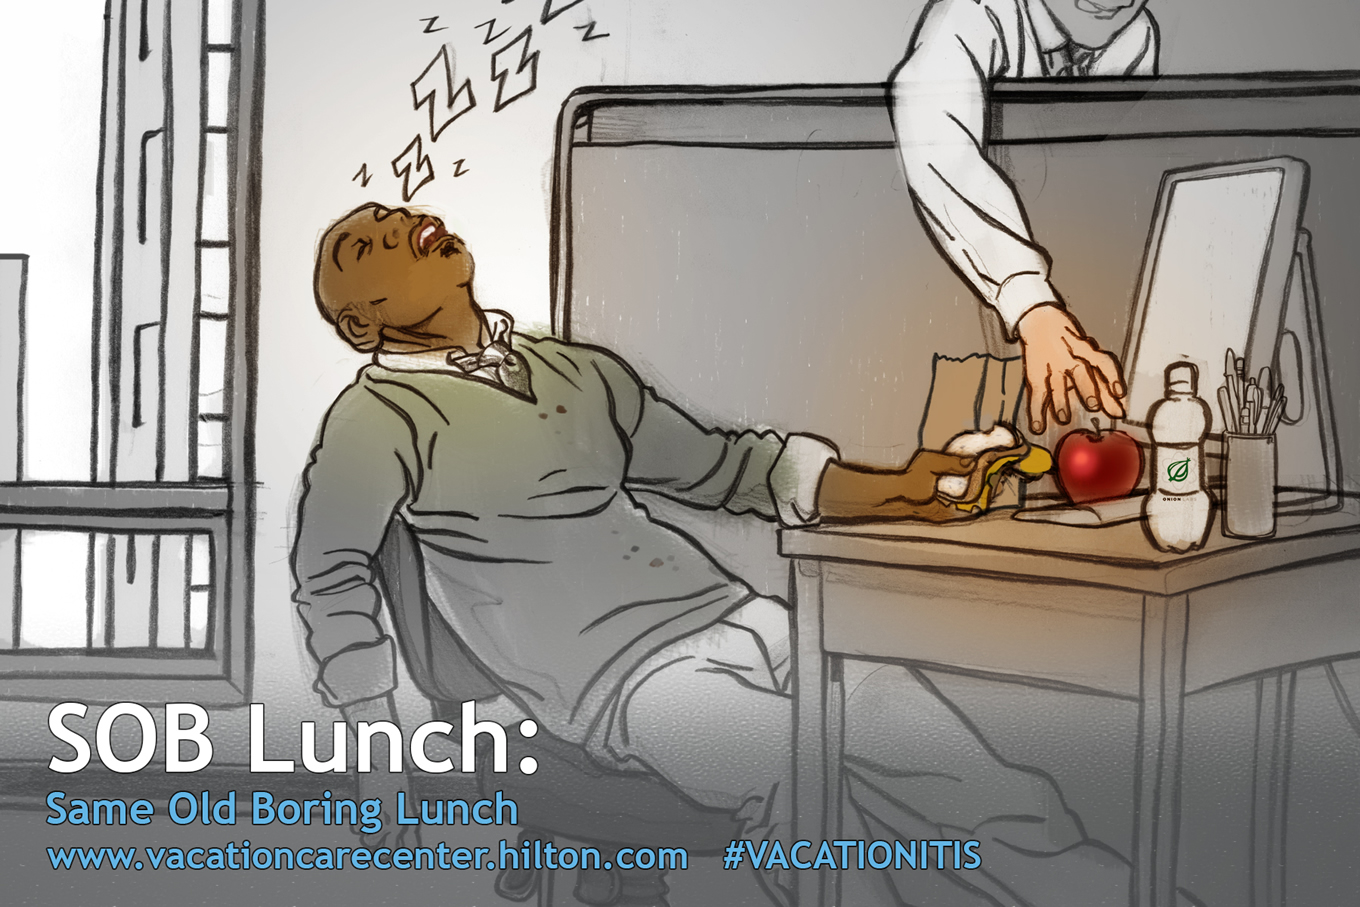 SOB Lunch, Hilton Urgent Vacation Care Centre Marketing Campaign